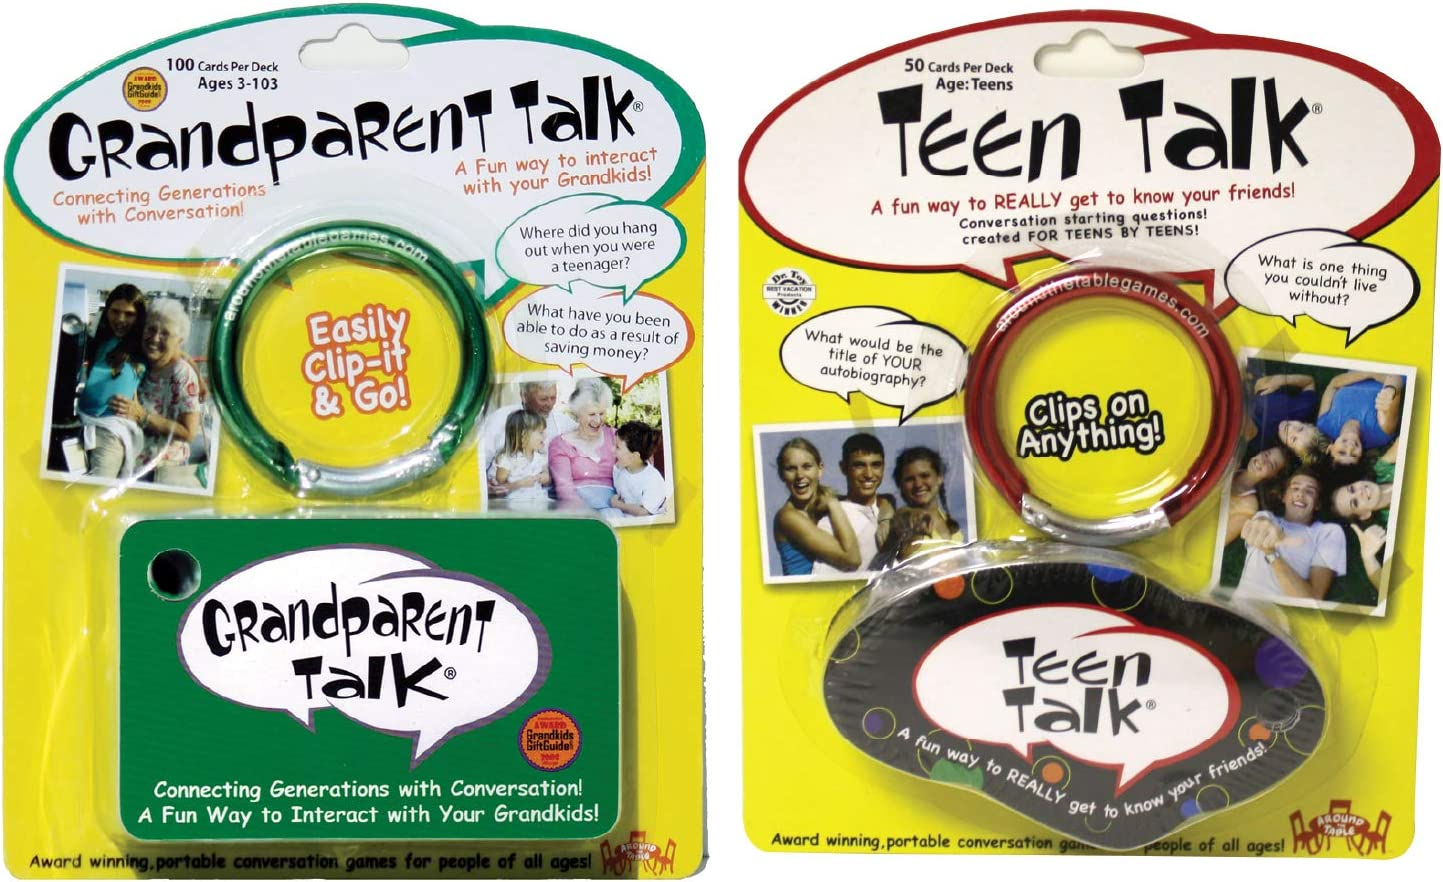 Continuum 5 ☆ popular Games Grandparent Talk and wit Set - Connect New products, world's highest quality popular! Teen